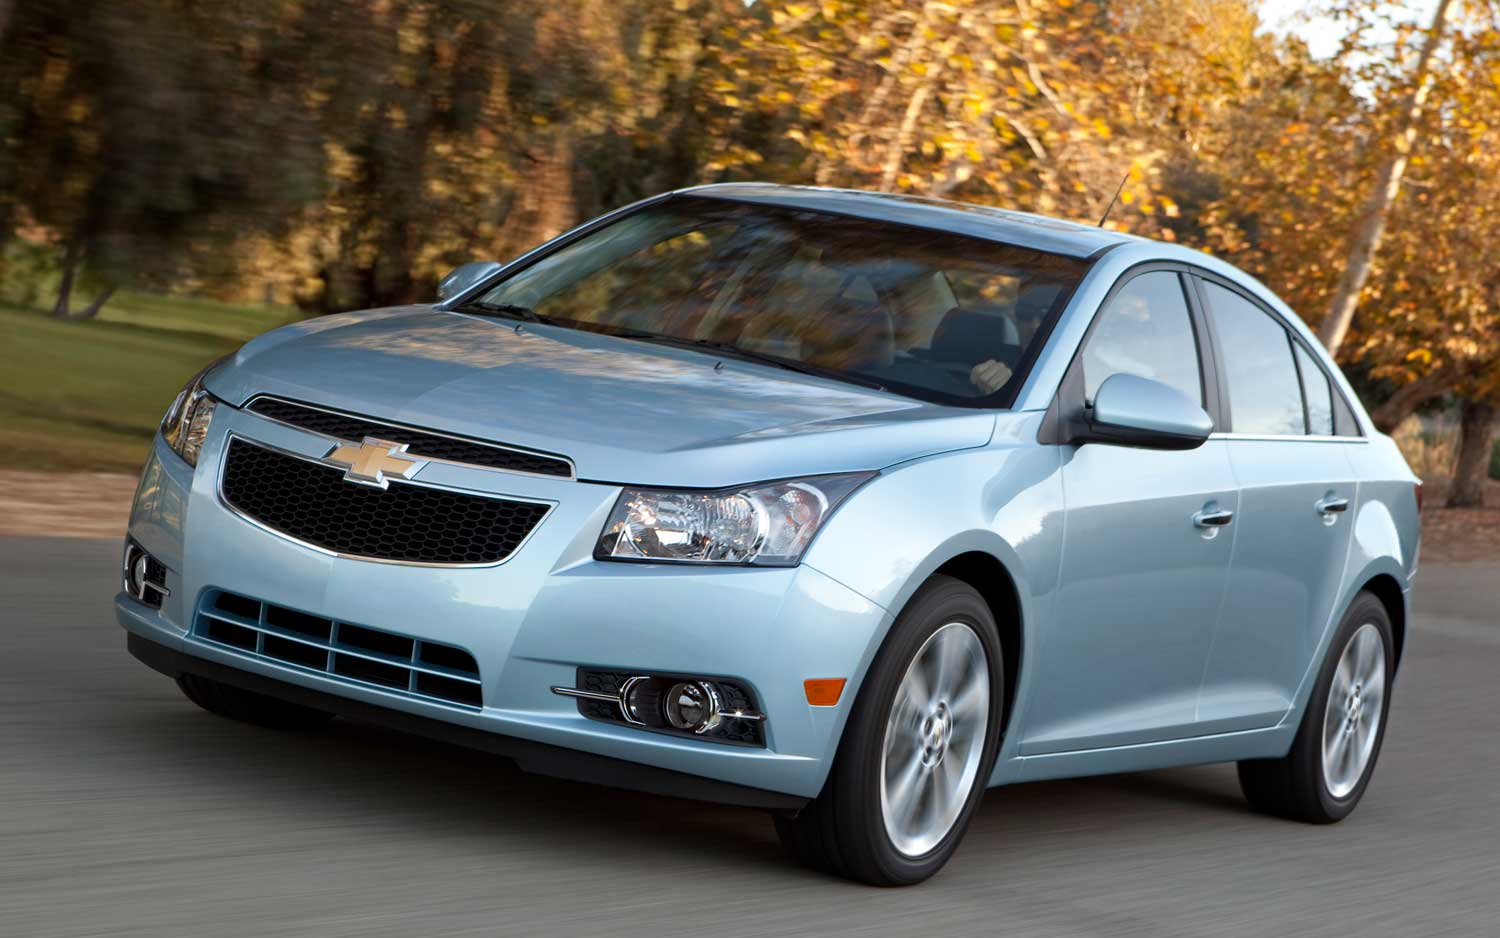 Cruze chevy cruze 2lt : 2012 Chevrolet Cruze 2LT - Editors' Notebook - Automobile Magazine